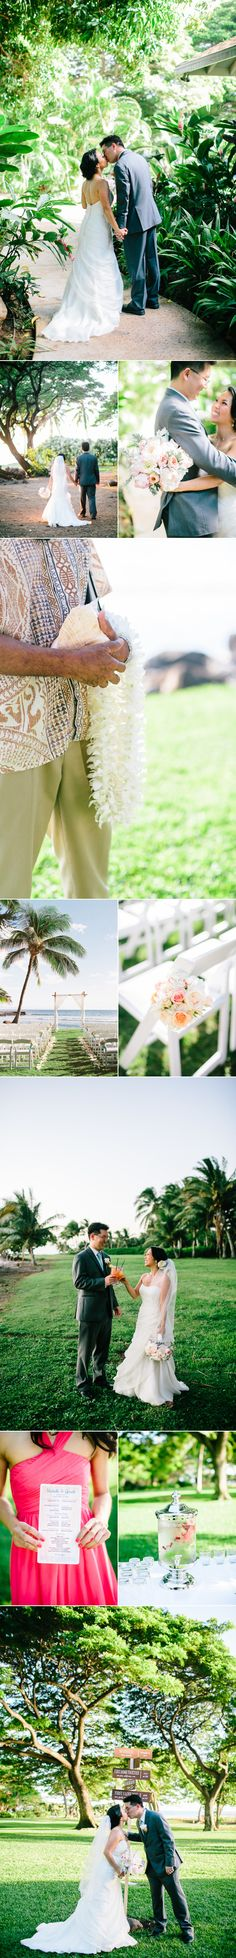 Say Hello To The Tropical Wedding of Your Dreams